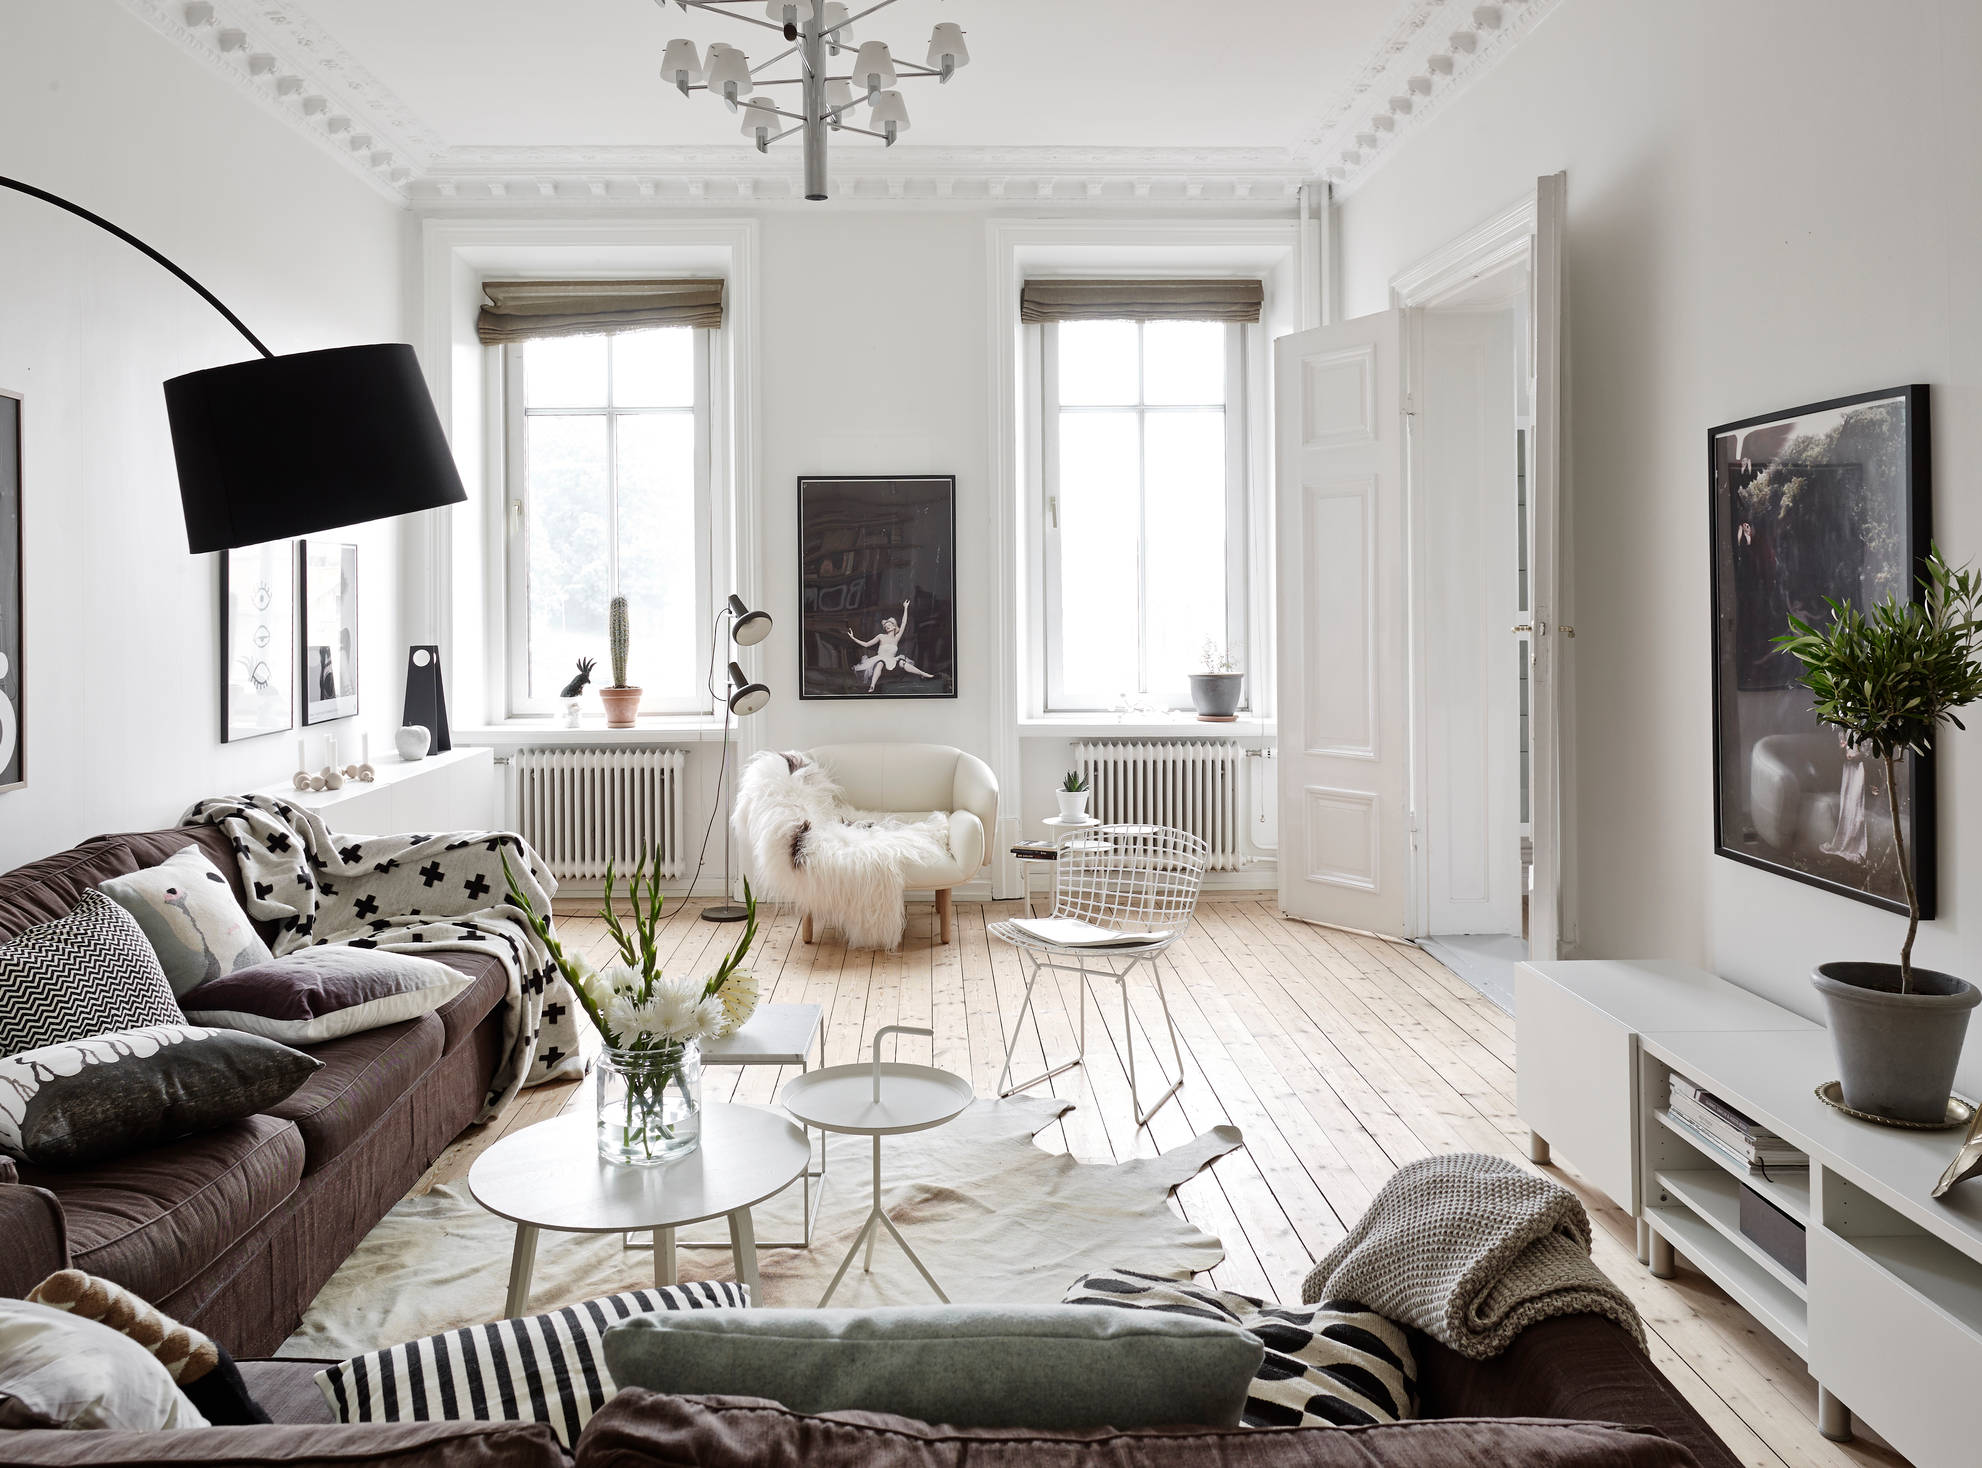 Ambiance cocooning planete deco a homes world - Deco salon cocooning ...